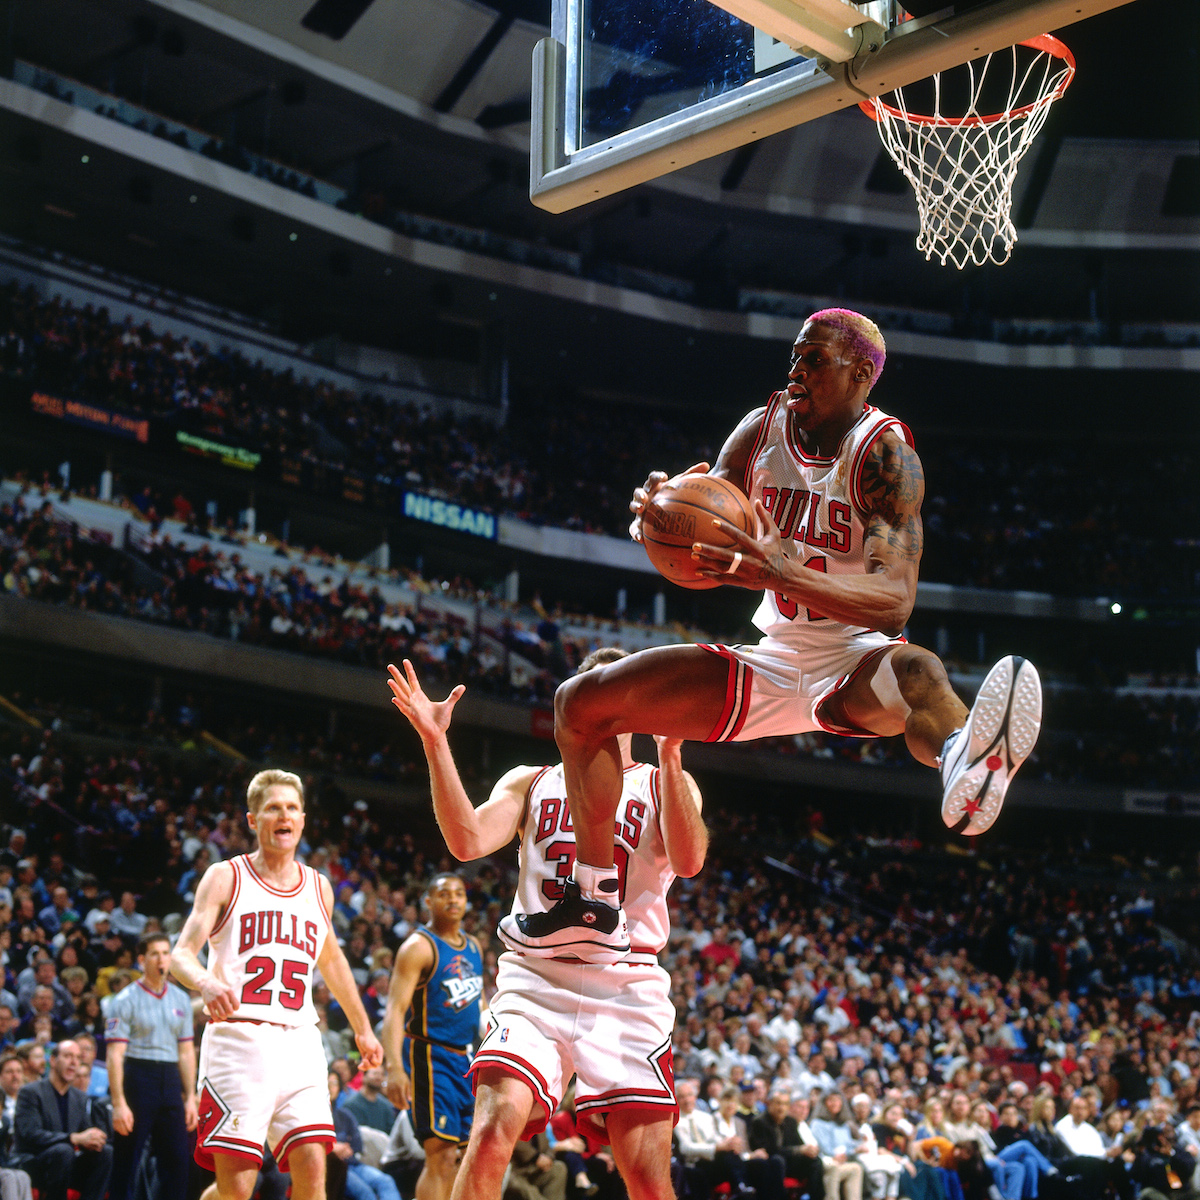 Dennis Rodman #91 of the Chicago Bulls rebounds during a game played on March 22, 1997 at the United Center in Chicago, Illinois.